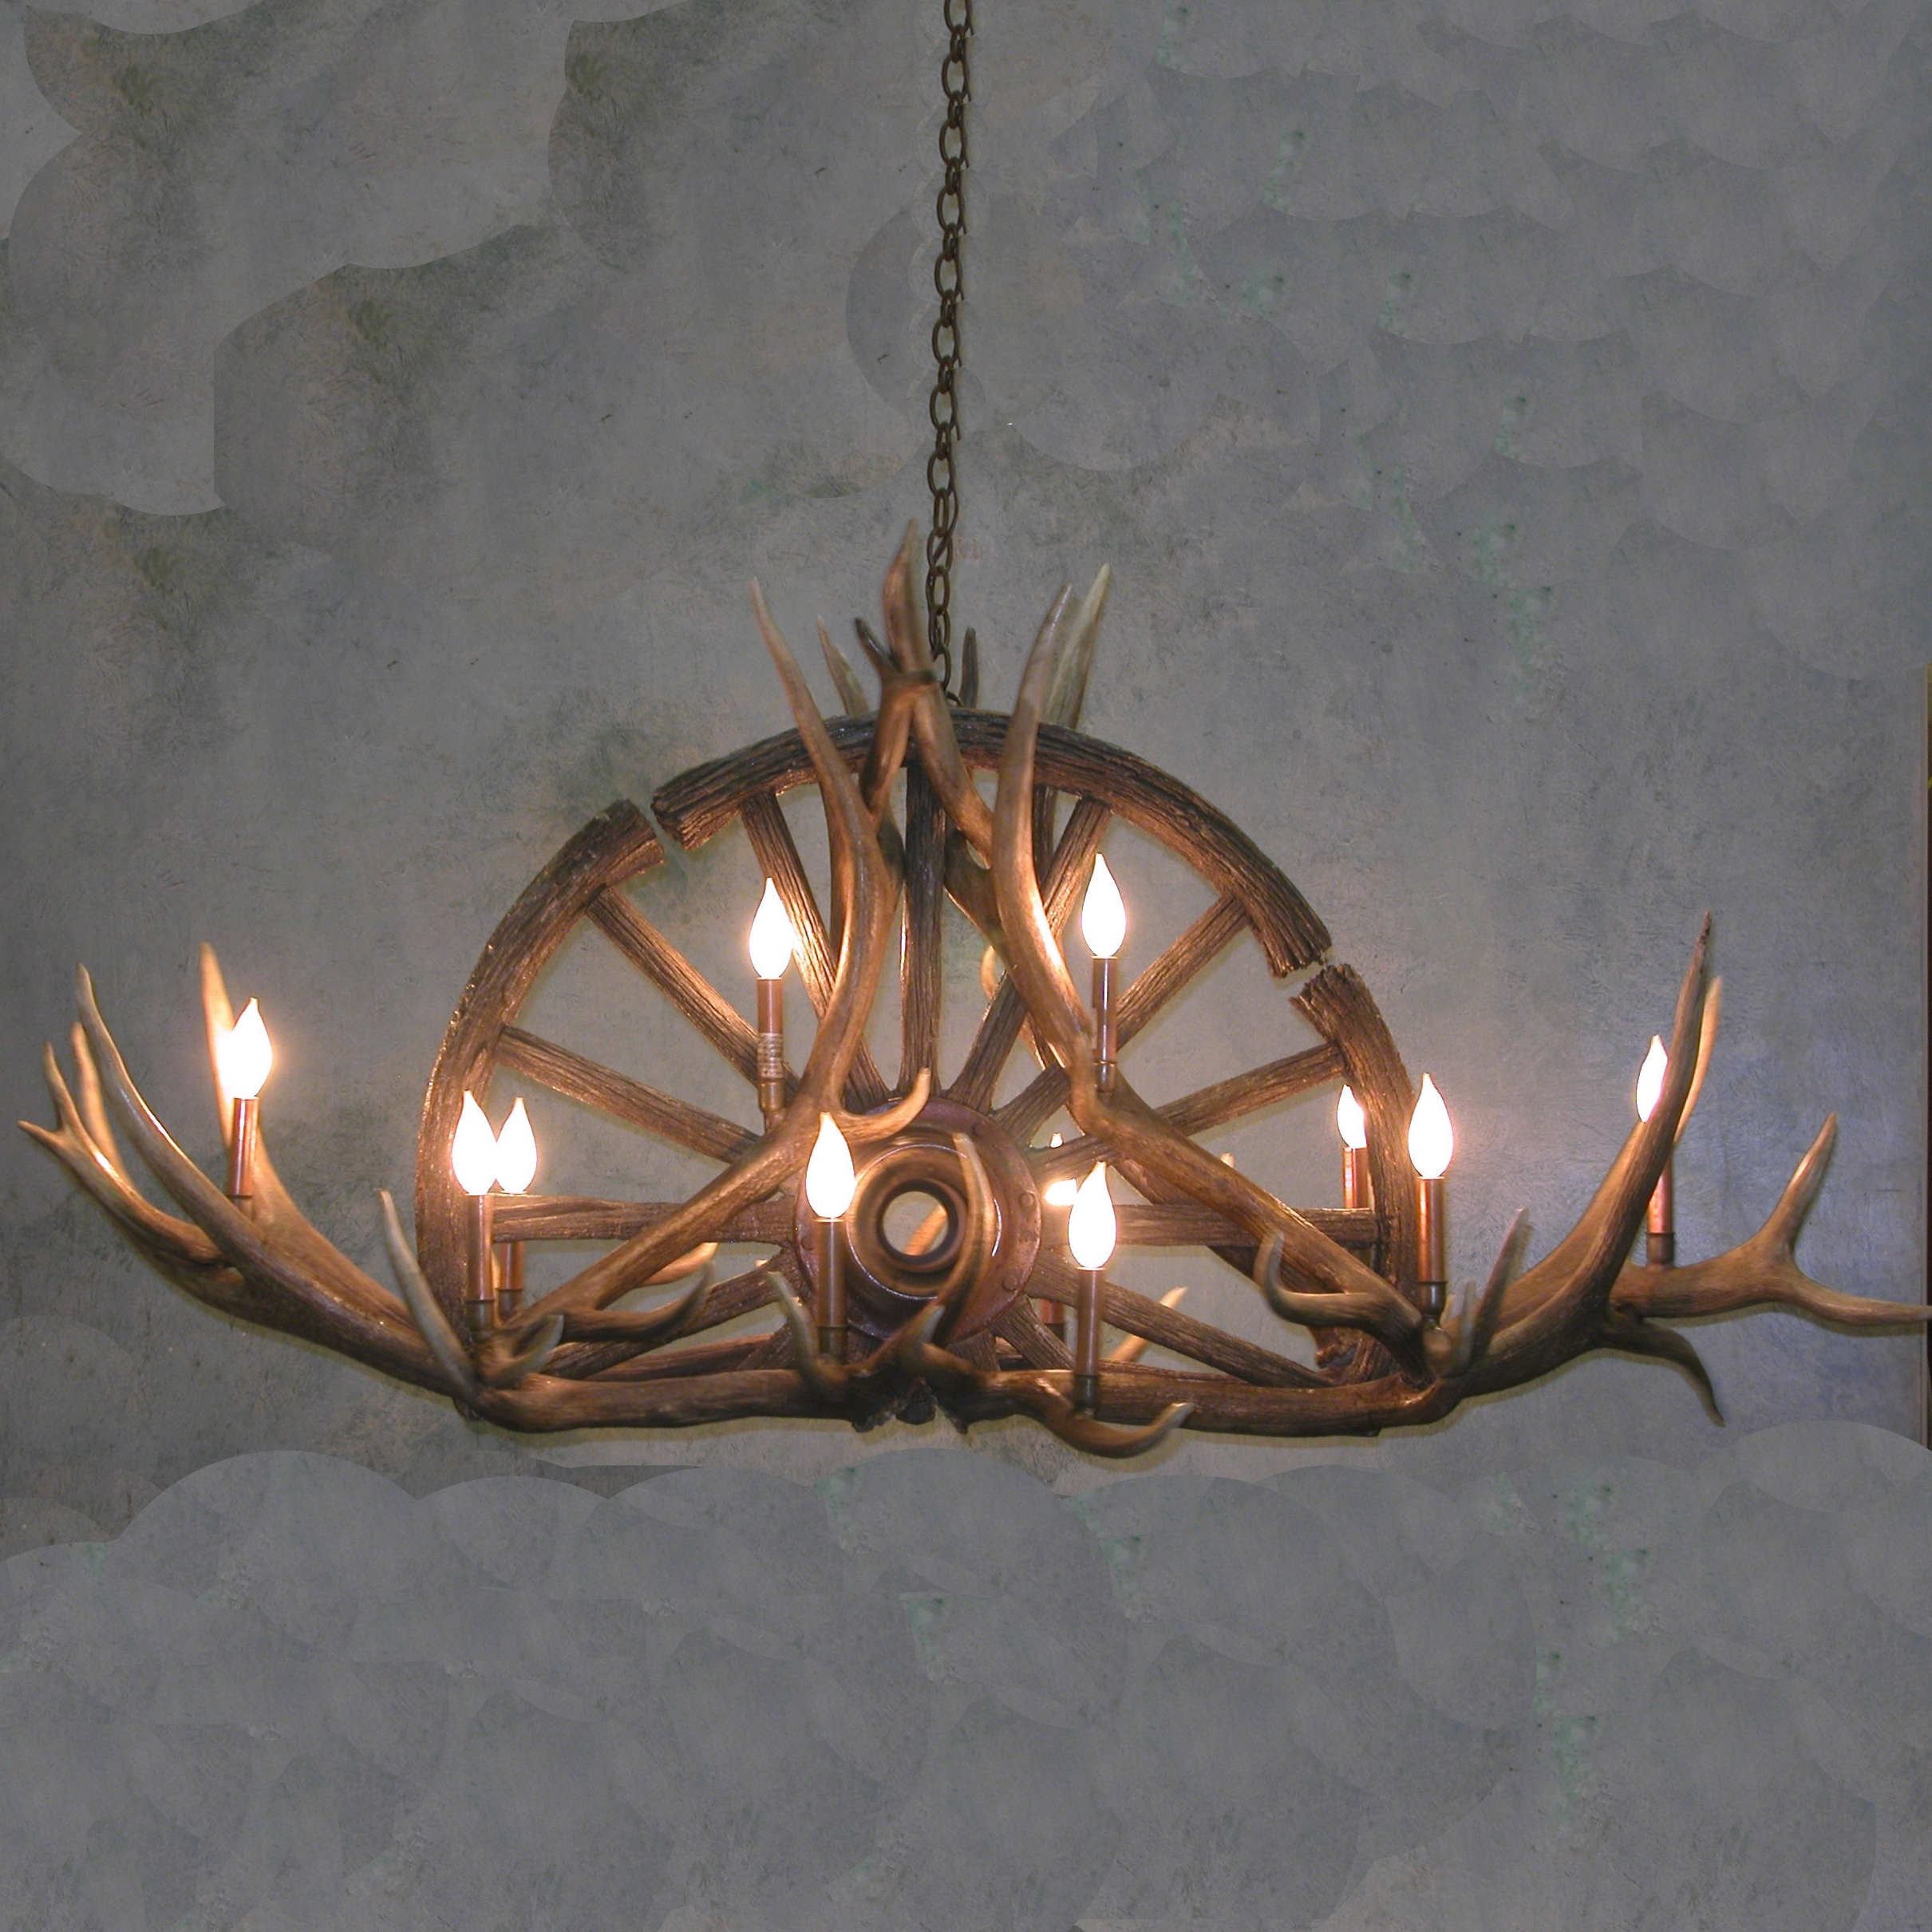 Antler Chandeliers And Lighting Inside Well Known Wagon Wheel Antler Chandelier (View 2 of 15)